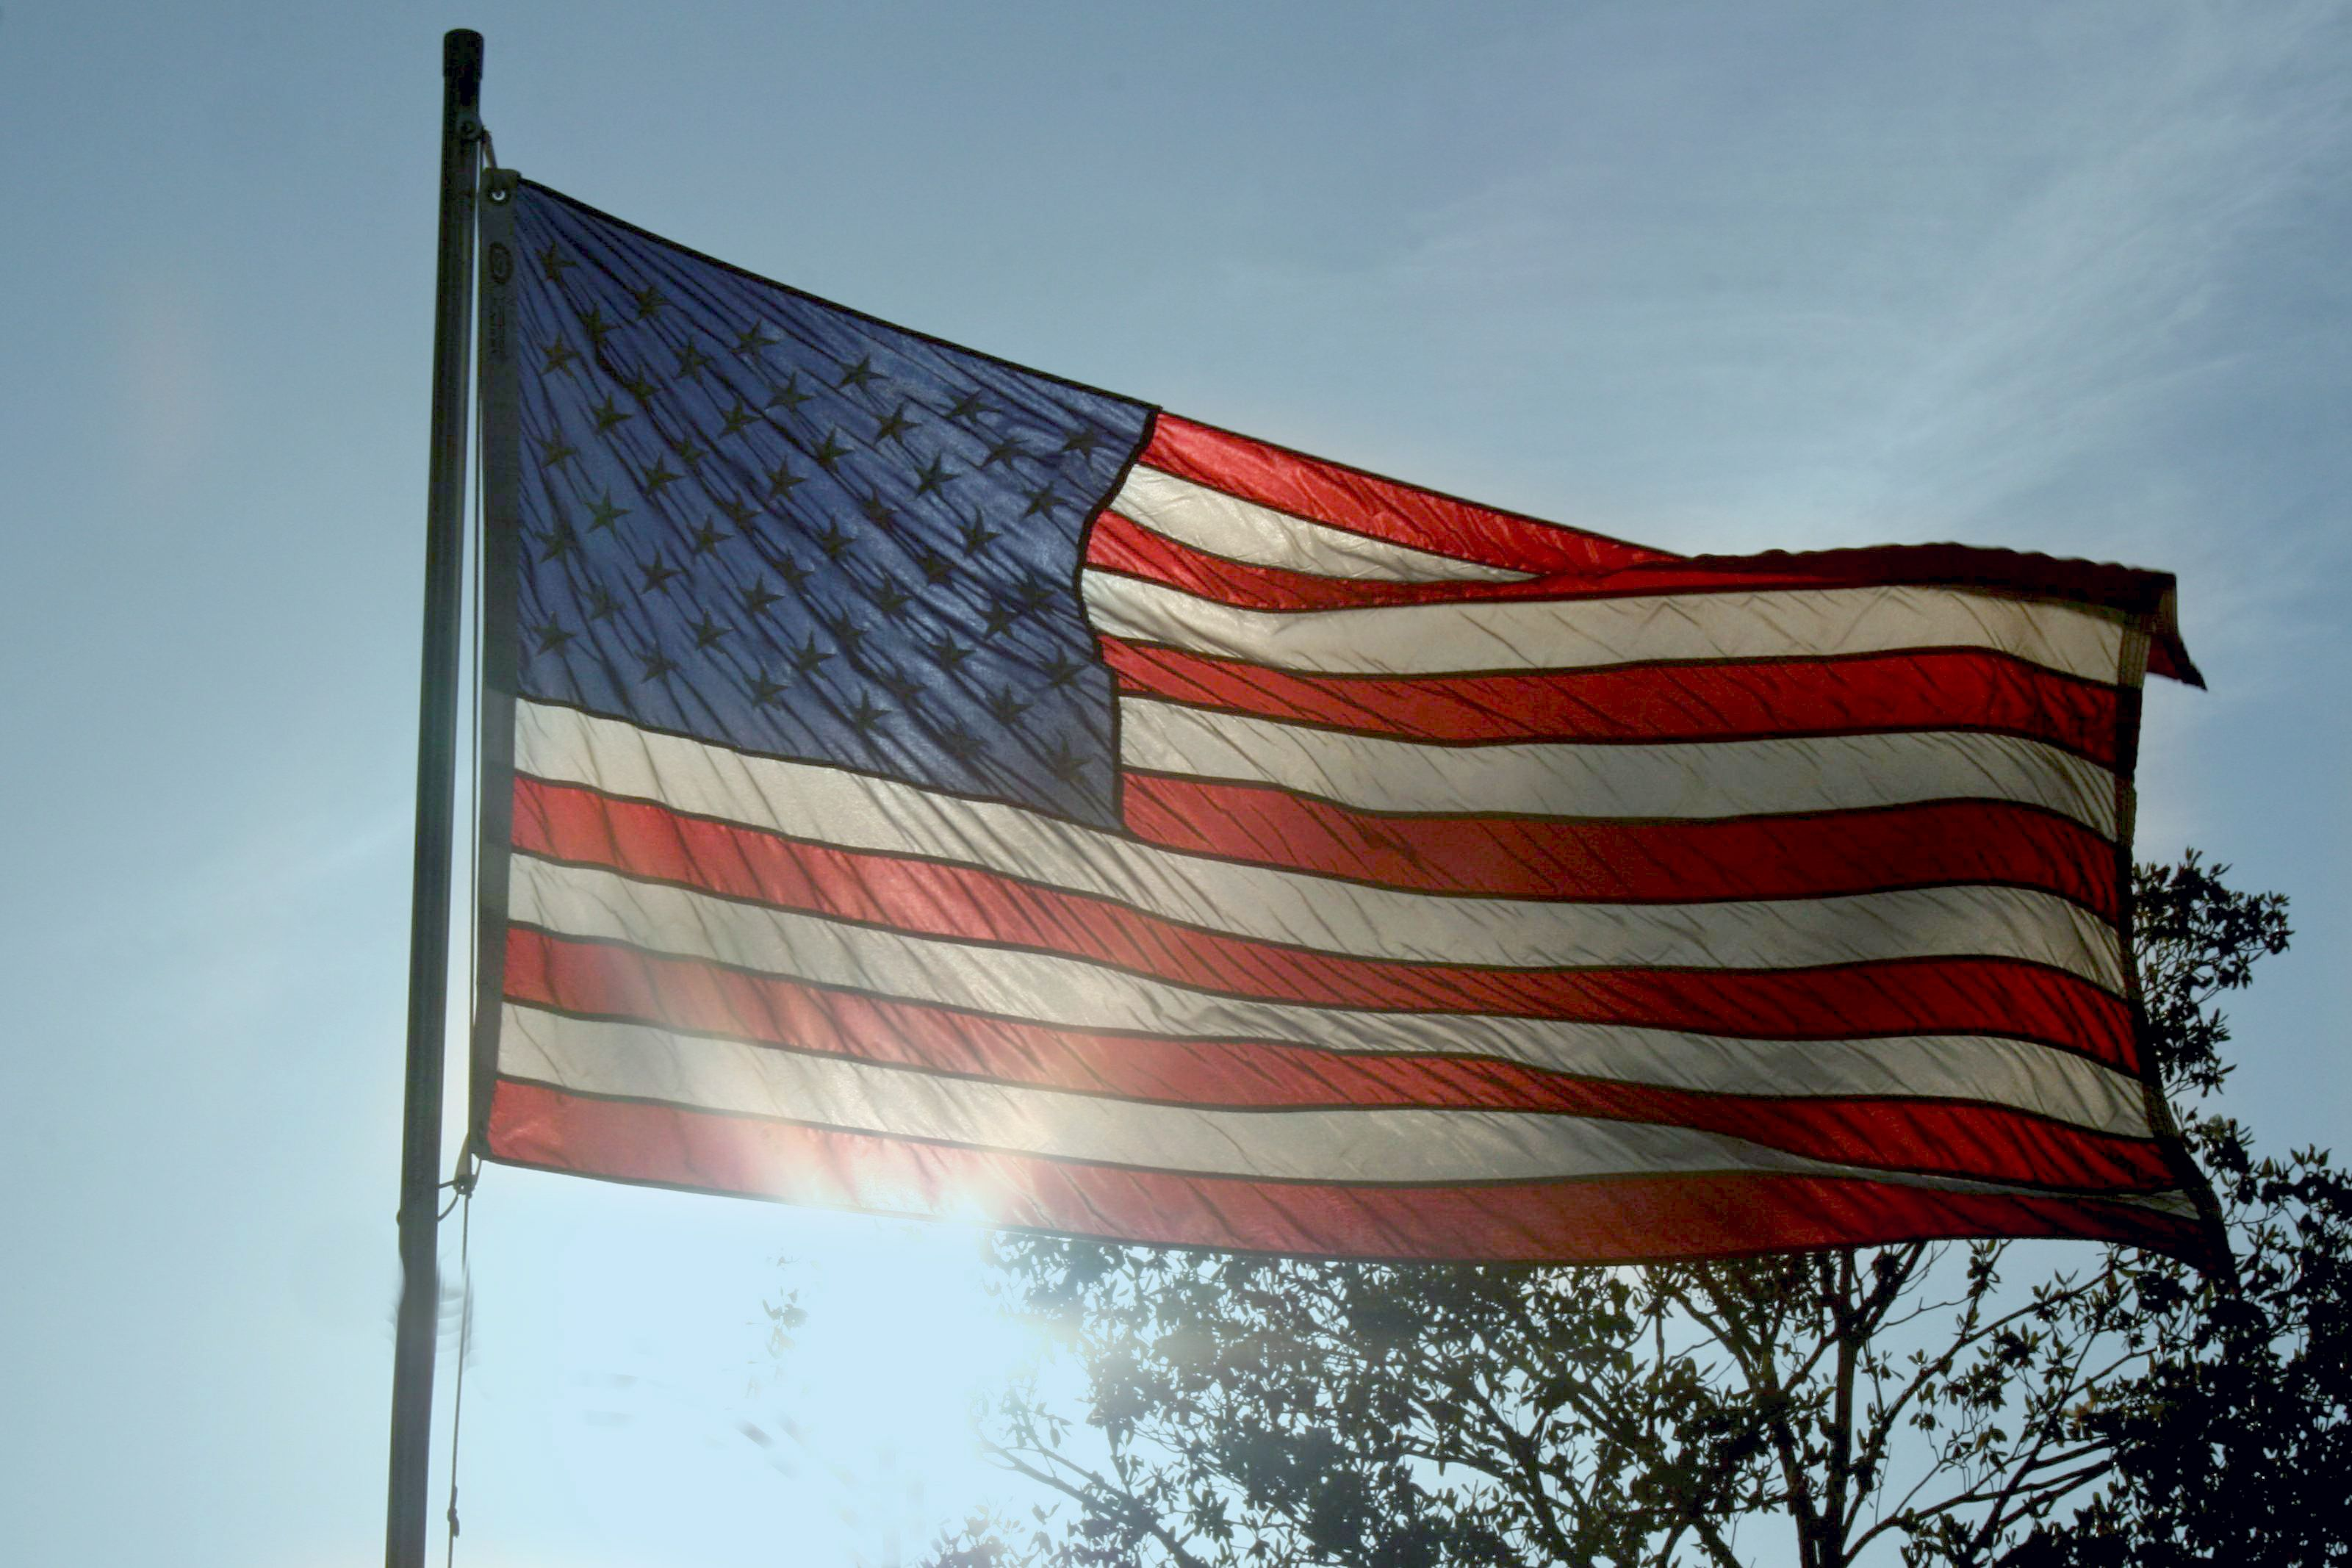 red white and blue flag with one star